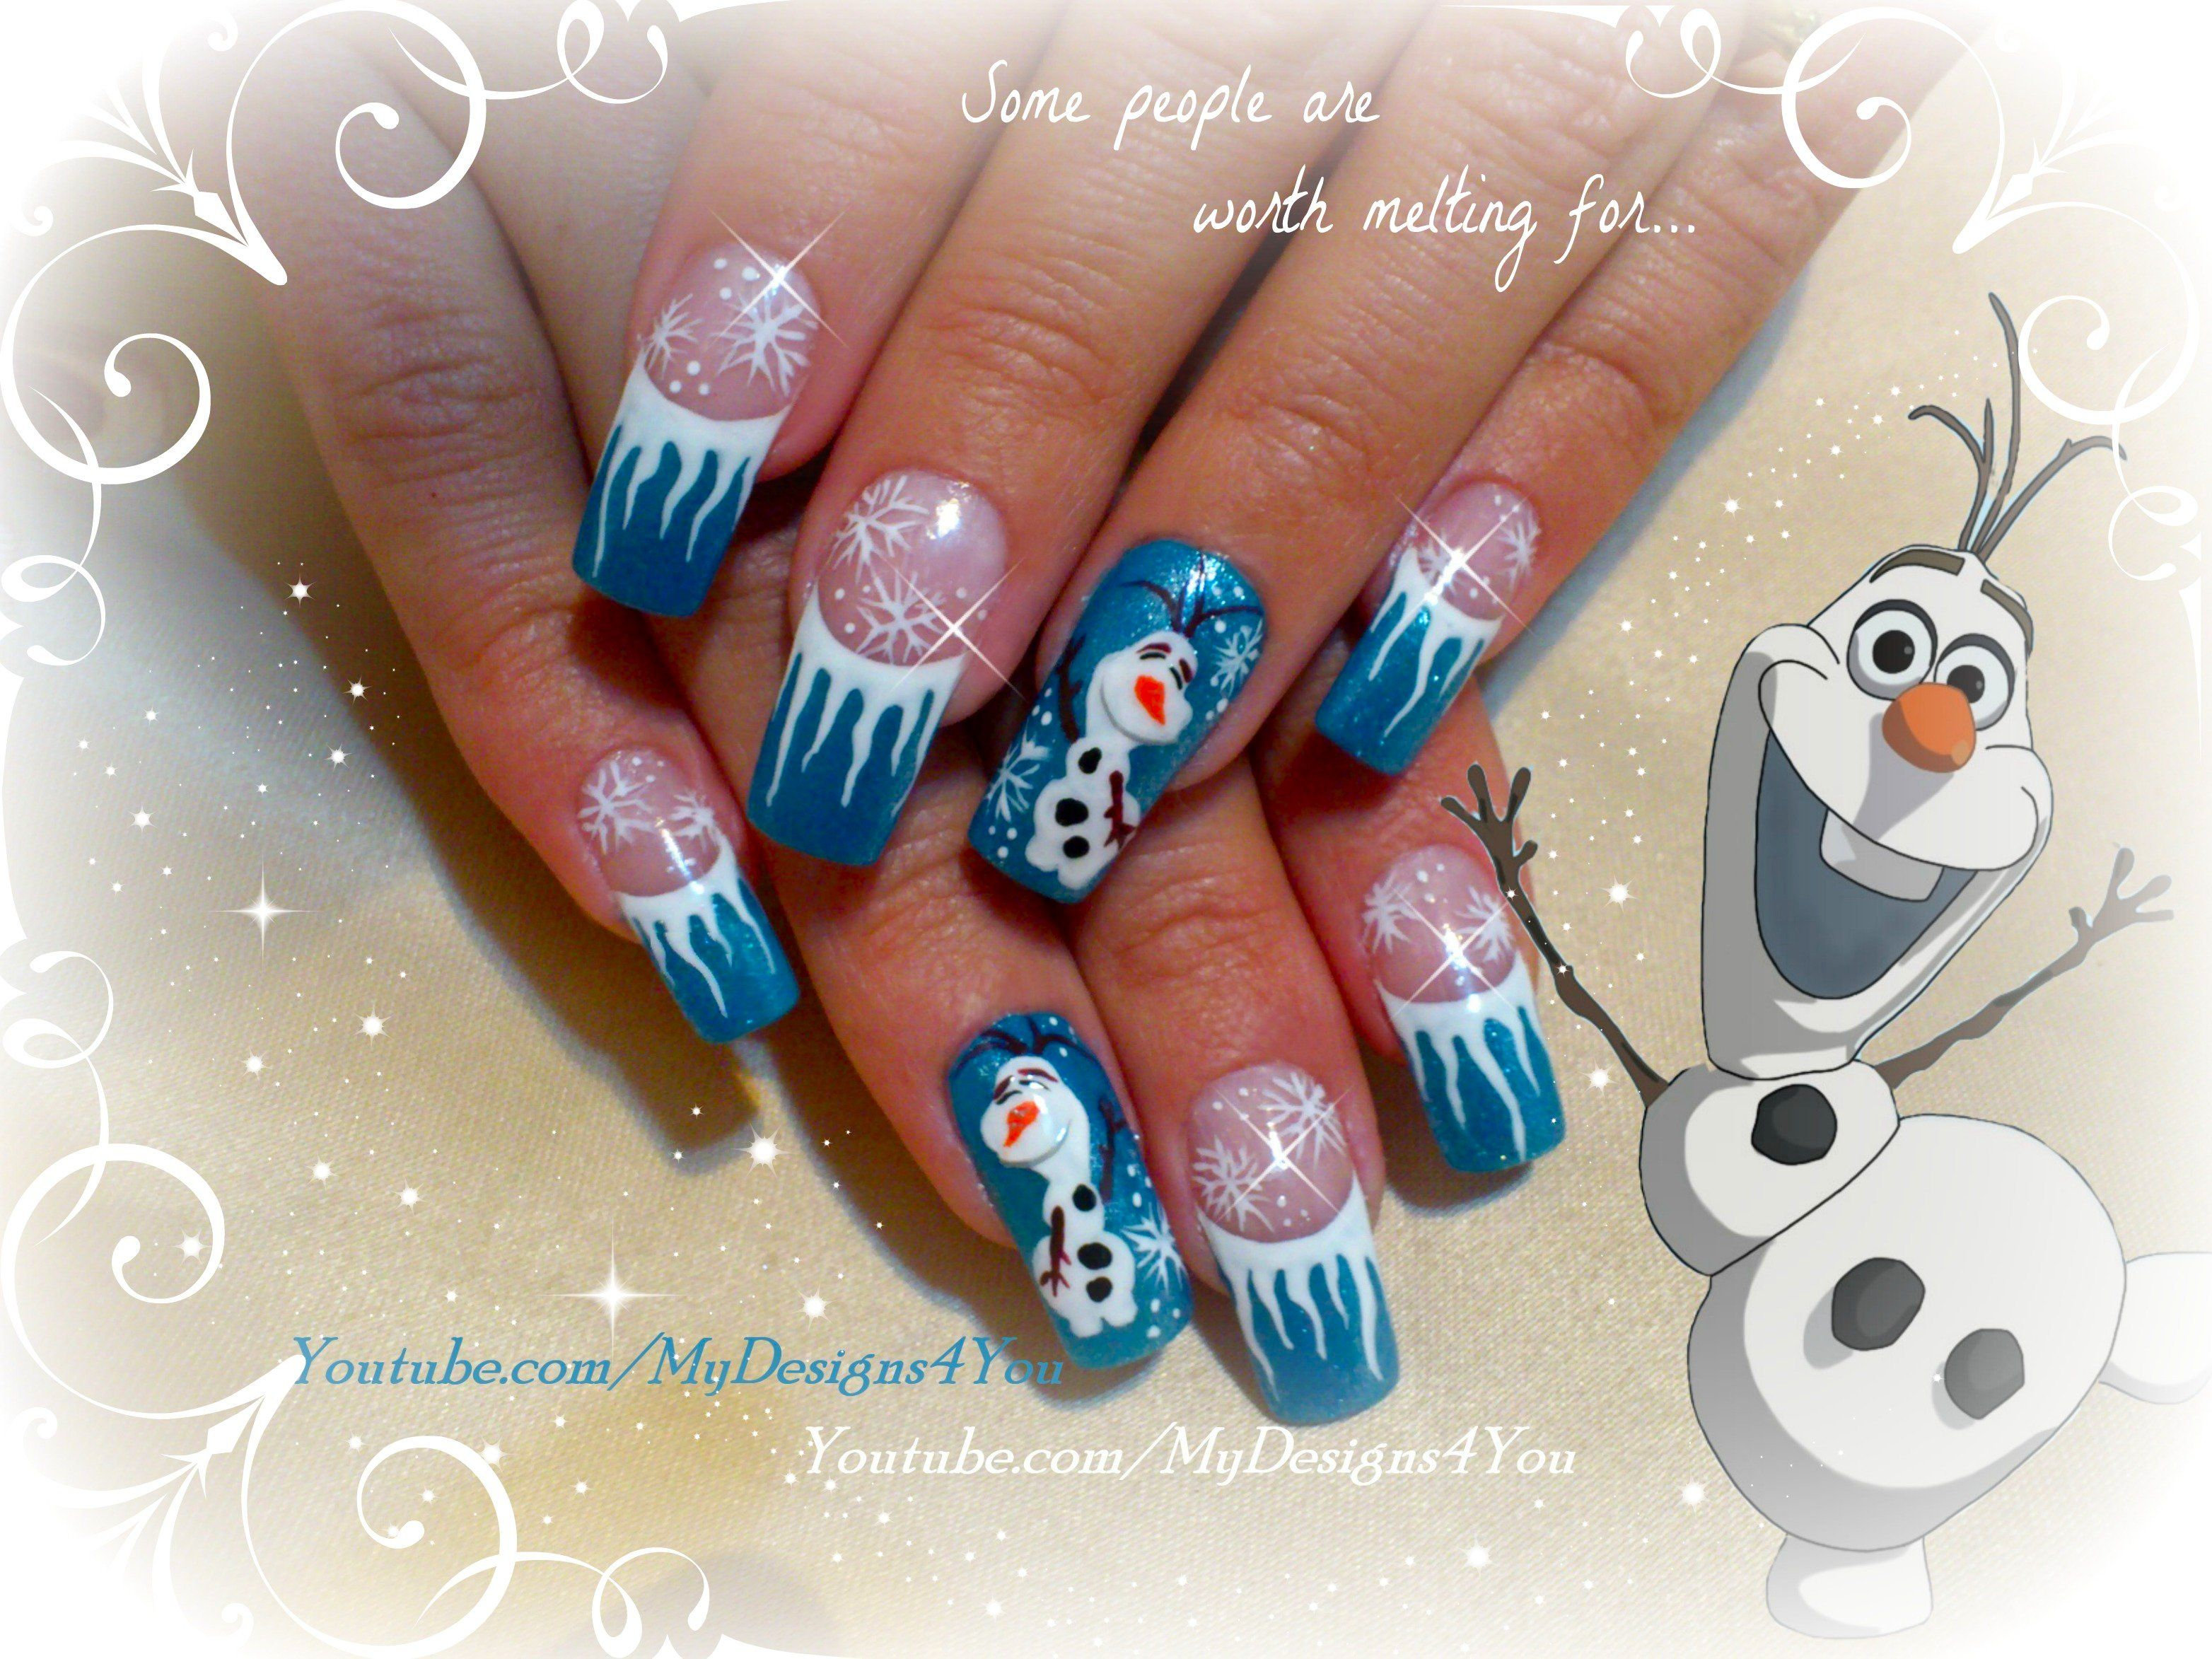 Disney FROZEN Inspired, OLAF the Snowman, Winter Nails by #mydesigns4you http://www.youtube.com/watch?v=El1BquqvgHY #nailart #nails #winternails #snowman #frozen #olaf #naildesign